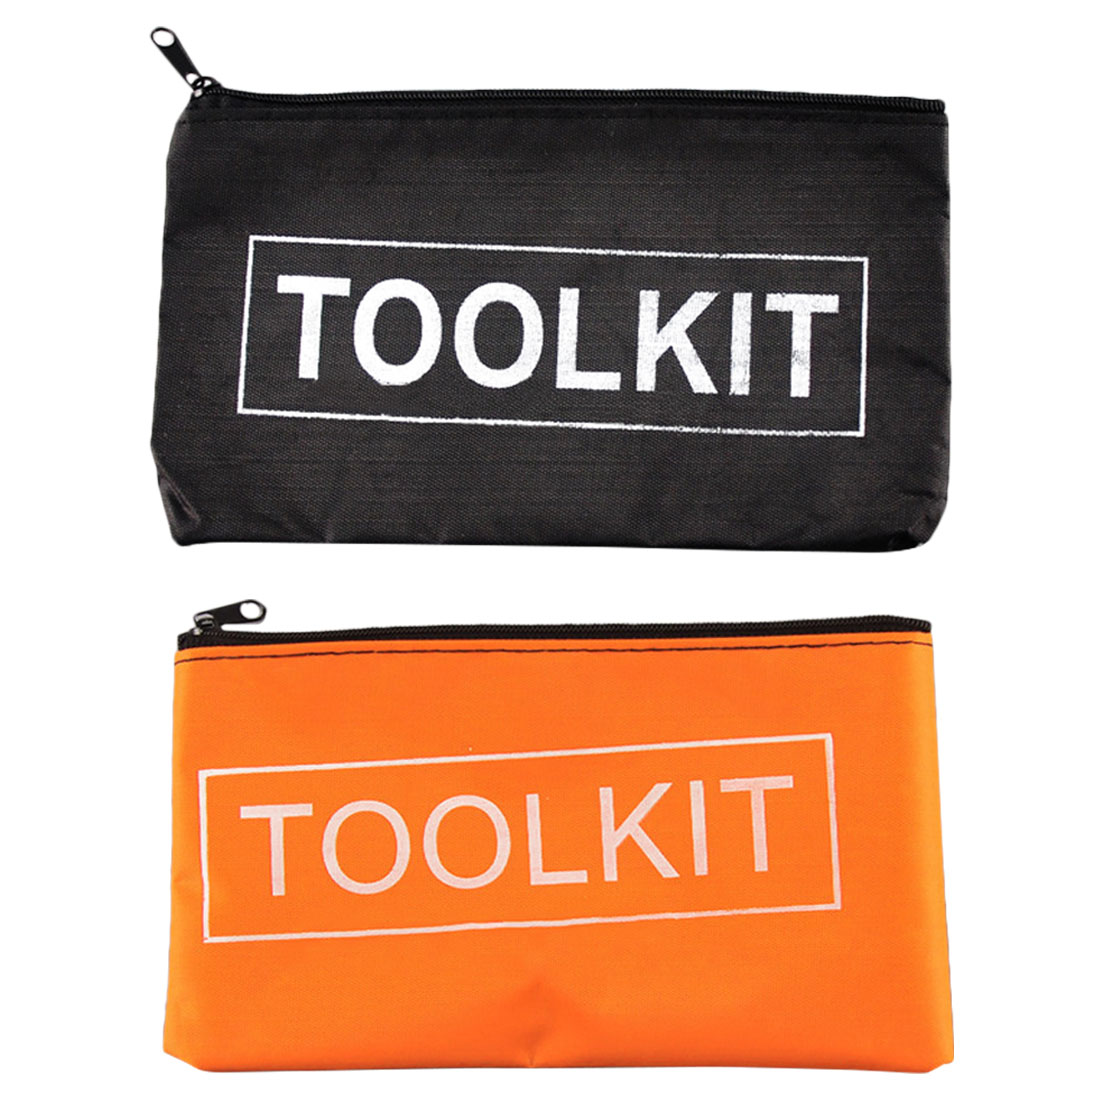 Portable Mini Tool Kit Bag 600D Oxford Cloth Tool Bag Storage Instrument Case 19x11cm Universal Size Hand Tool Bag Pocket